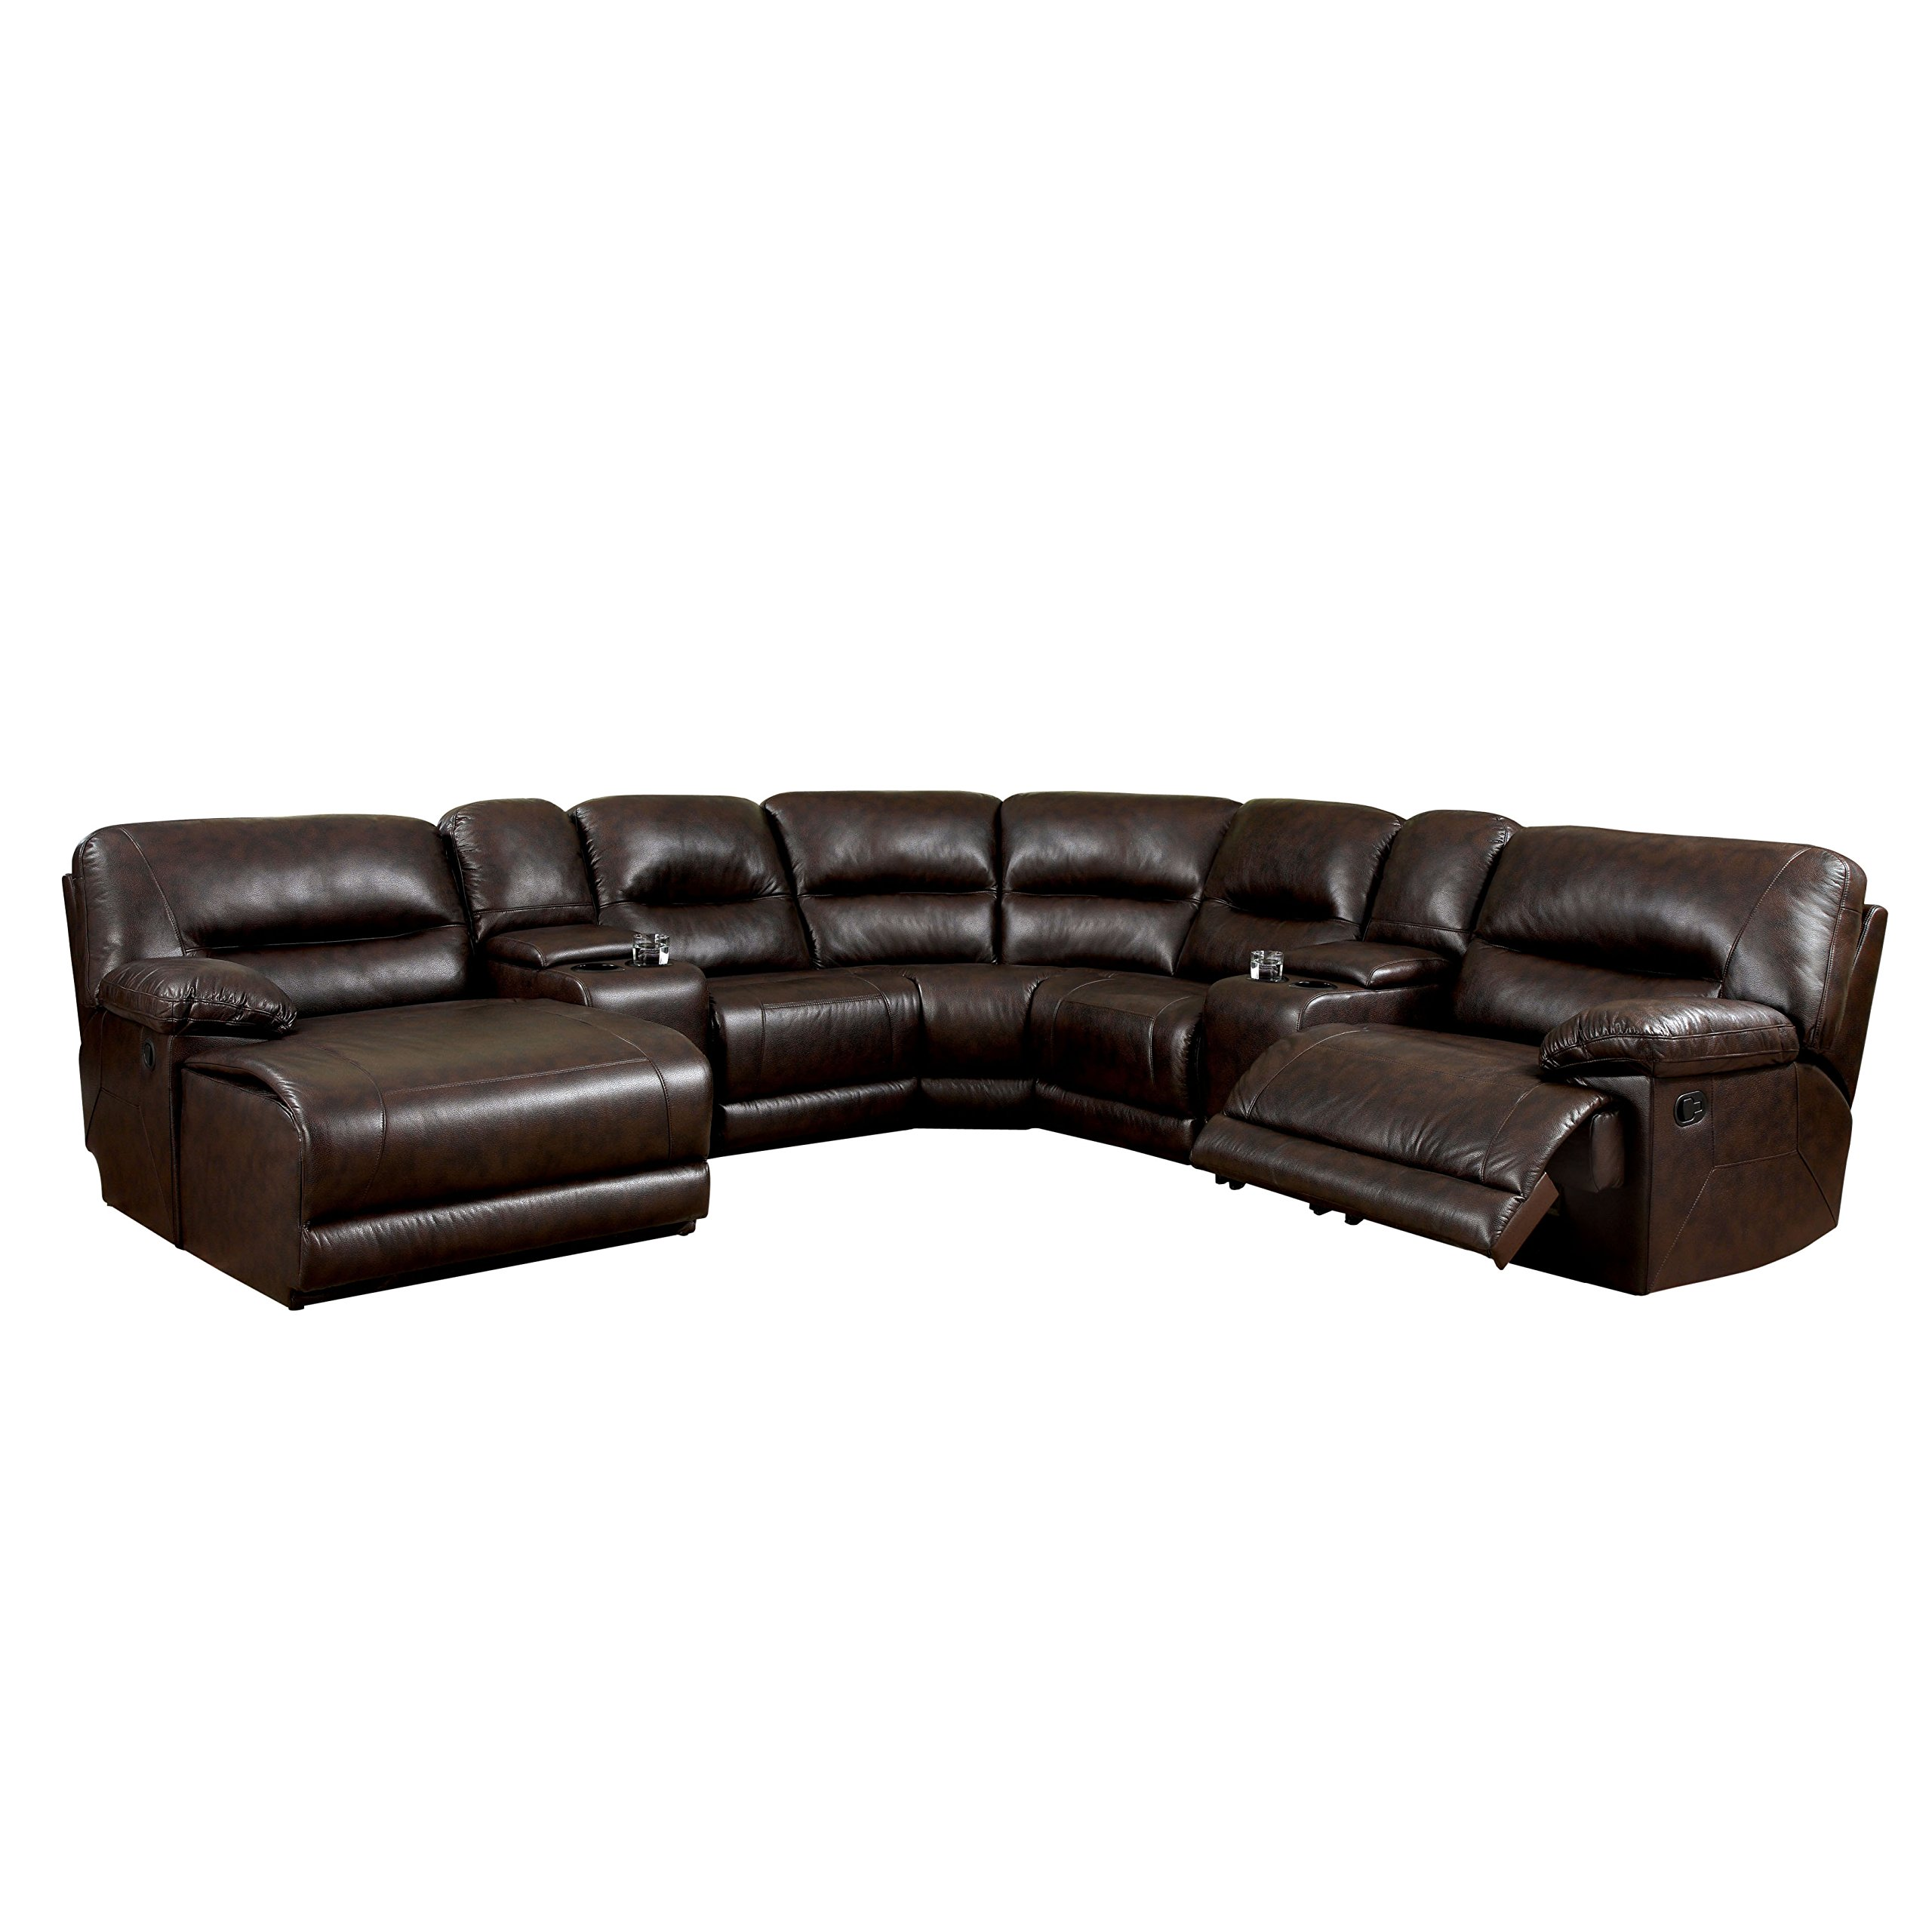 Cheap fort Corner Sofa Furniture find fort Corner Sofa